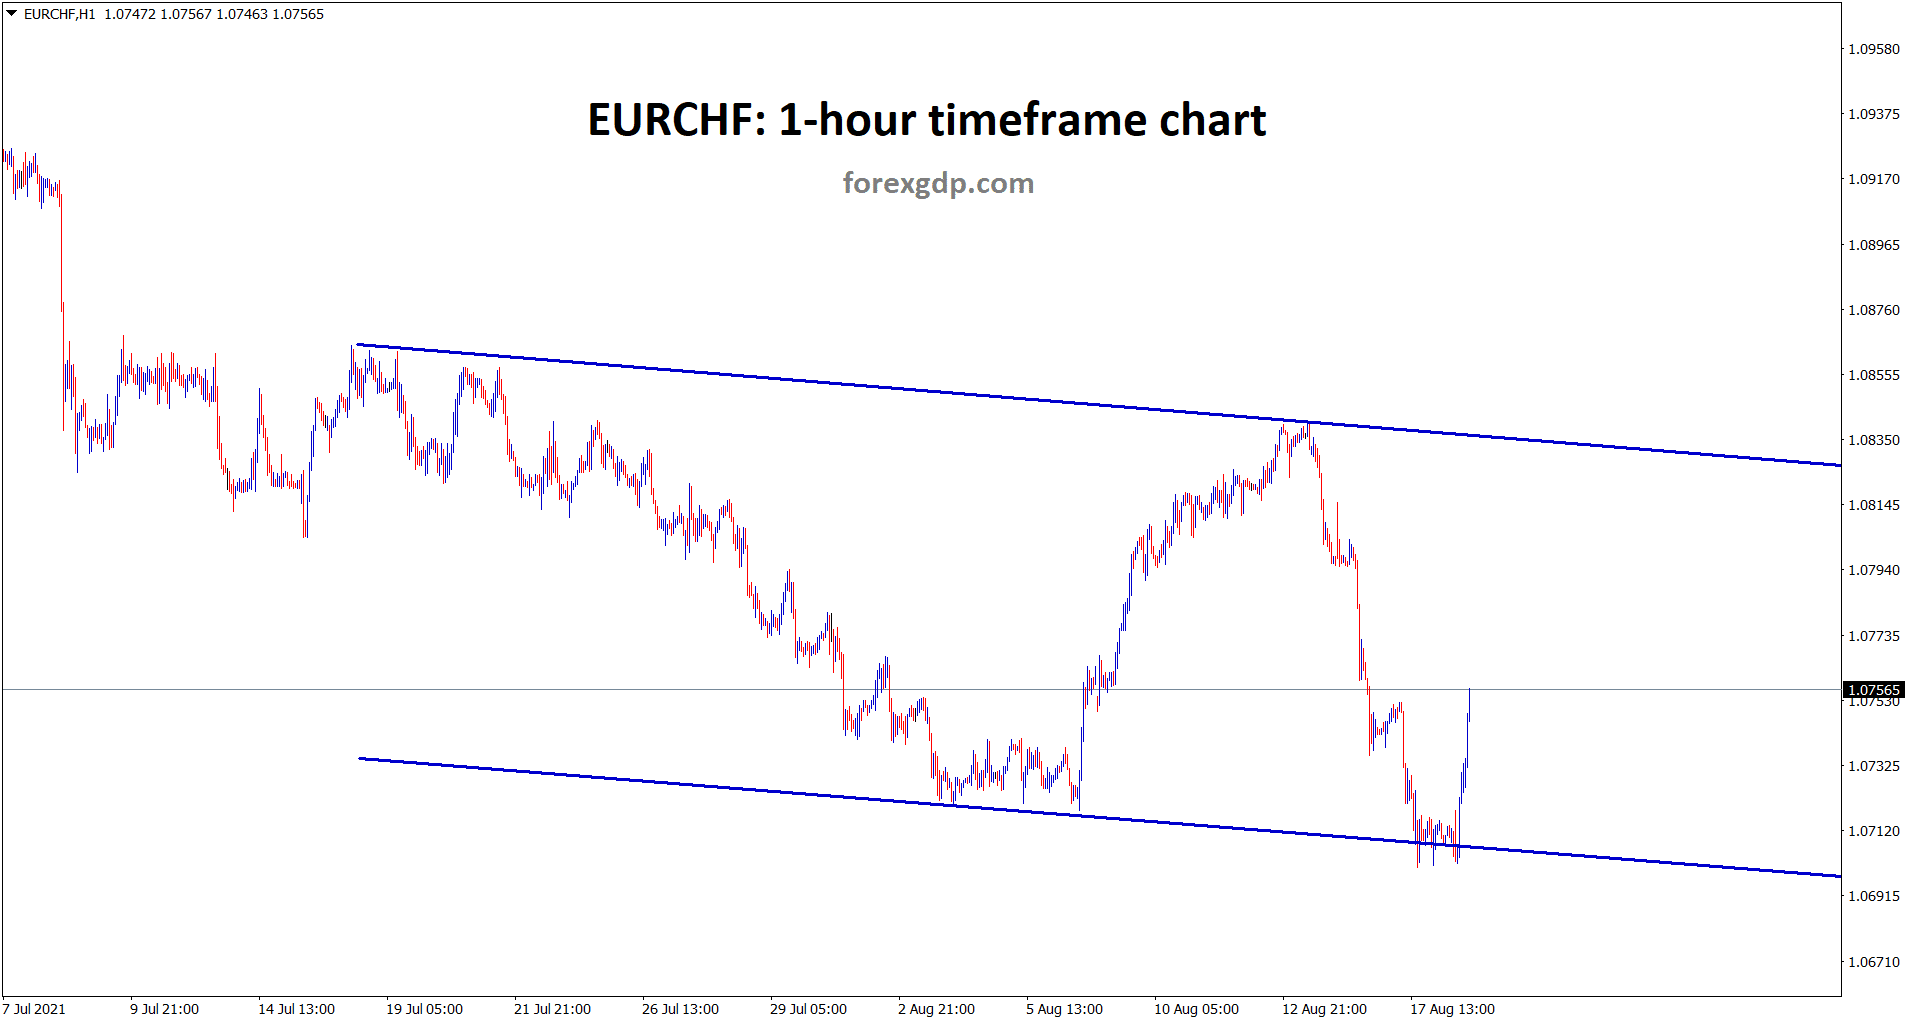 EURCHF is moving in a range area